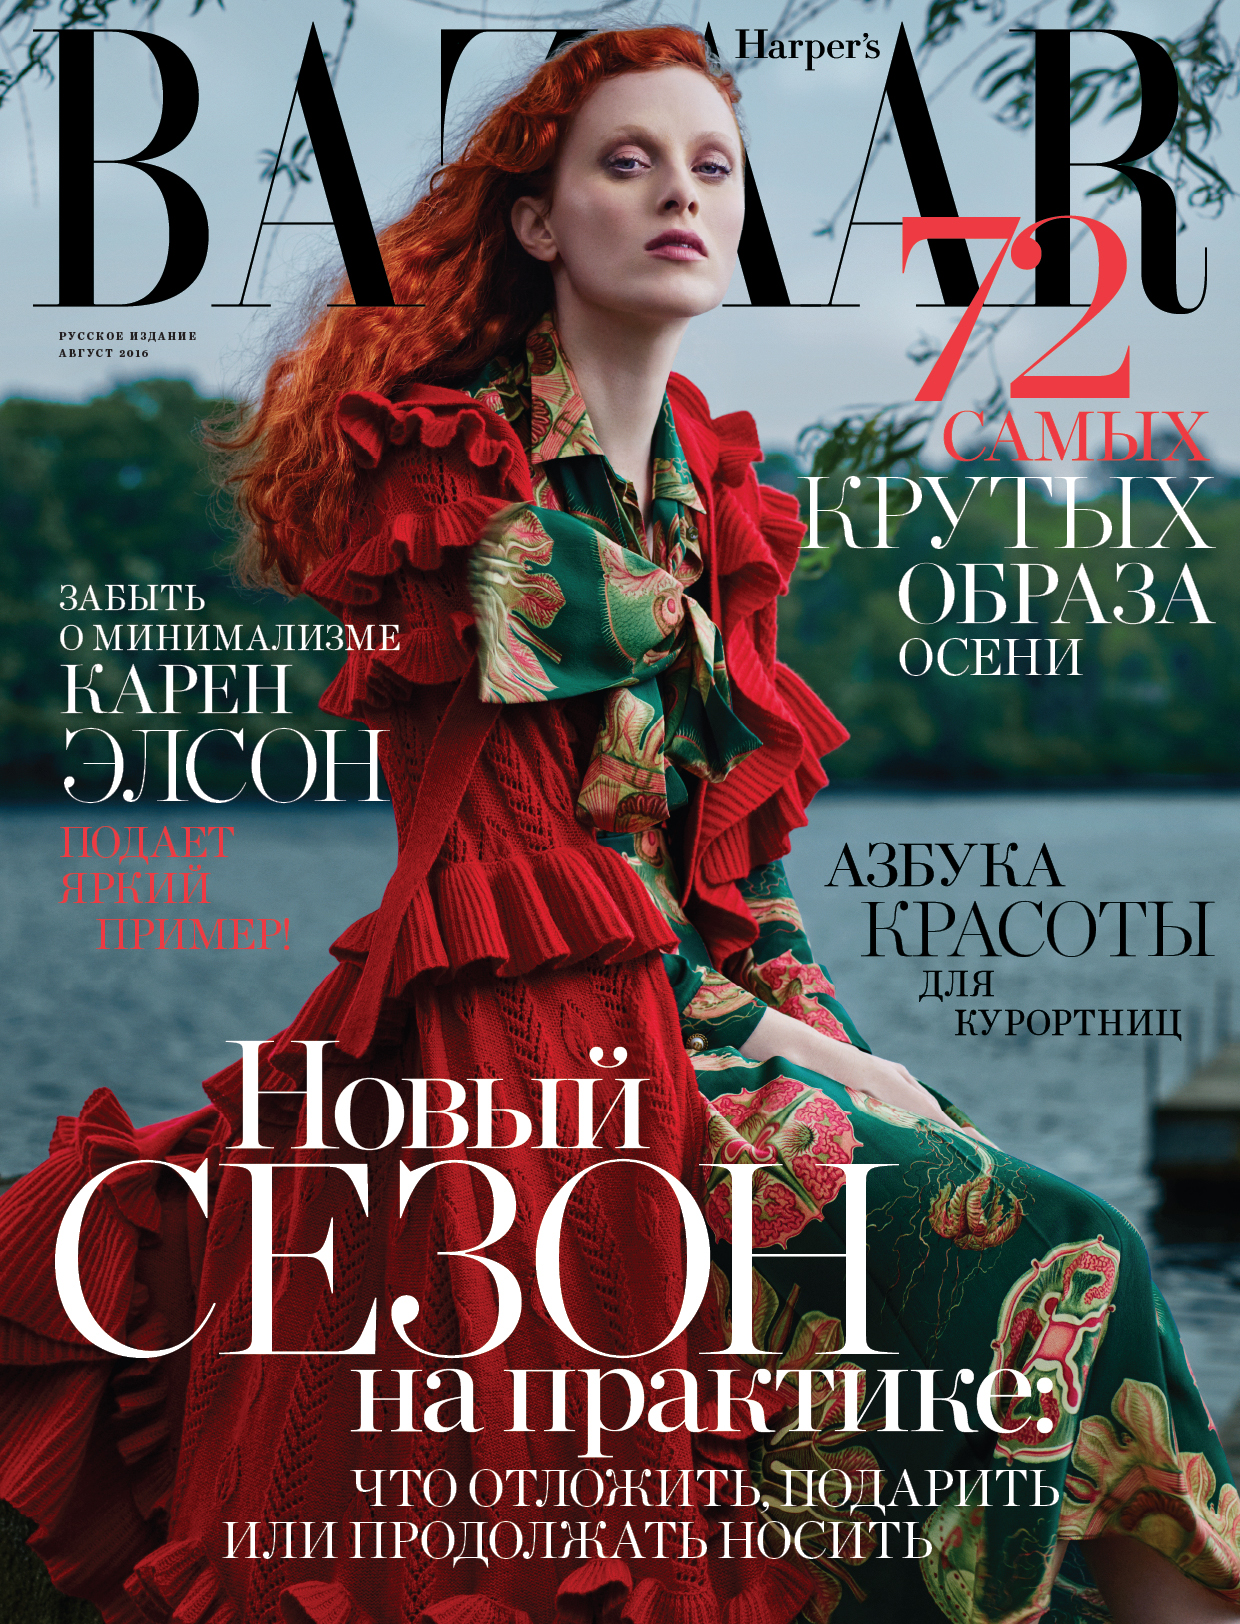 Editorial / Harper's Bazaar : Rachel Smith